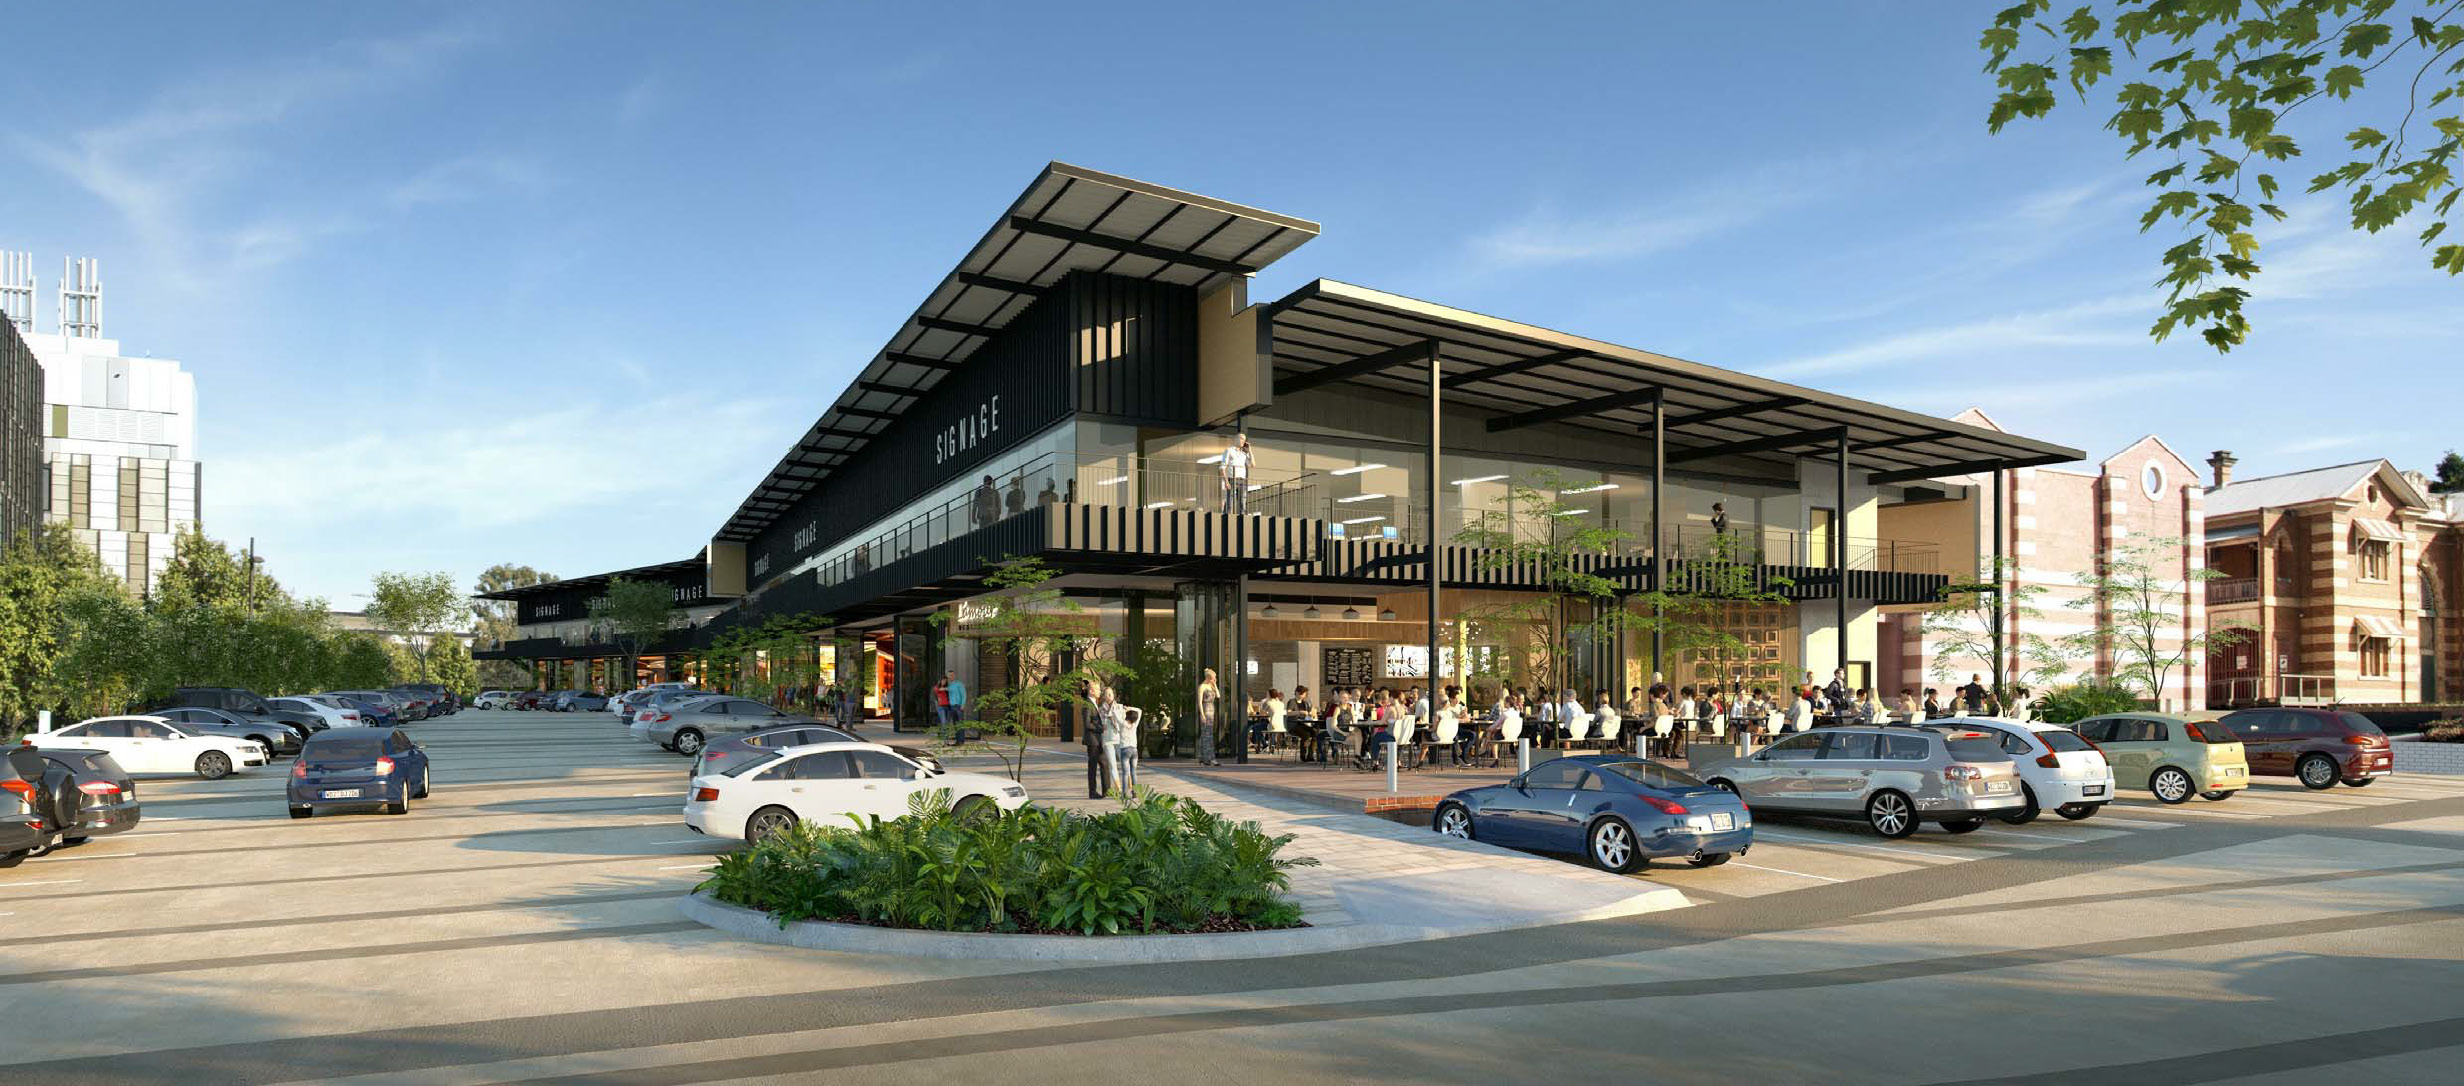 BOGGO ROAD BOULEVARD - RETAIL & COMMERCIAL